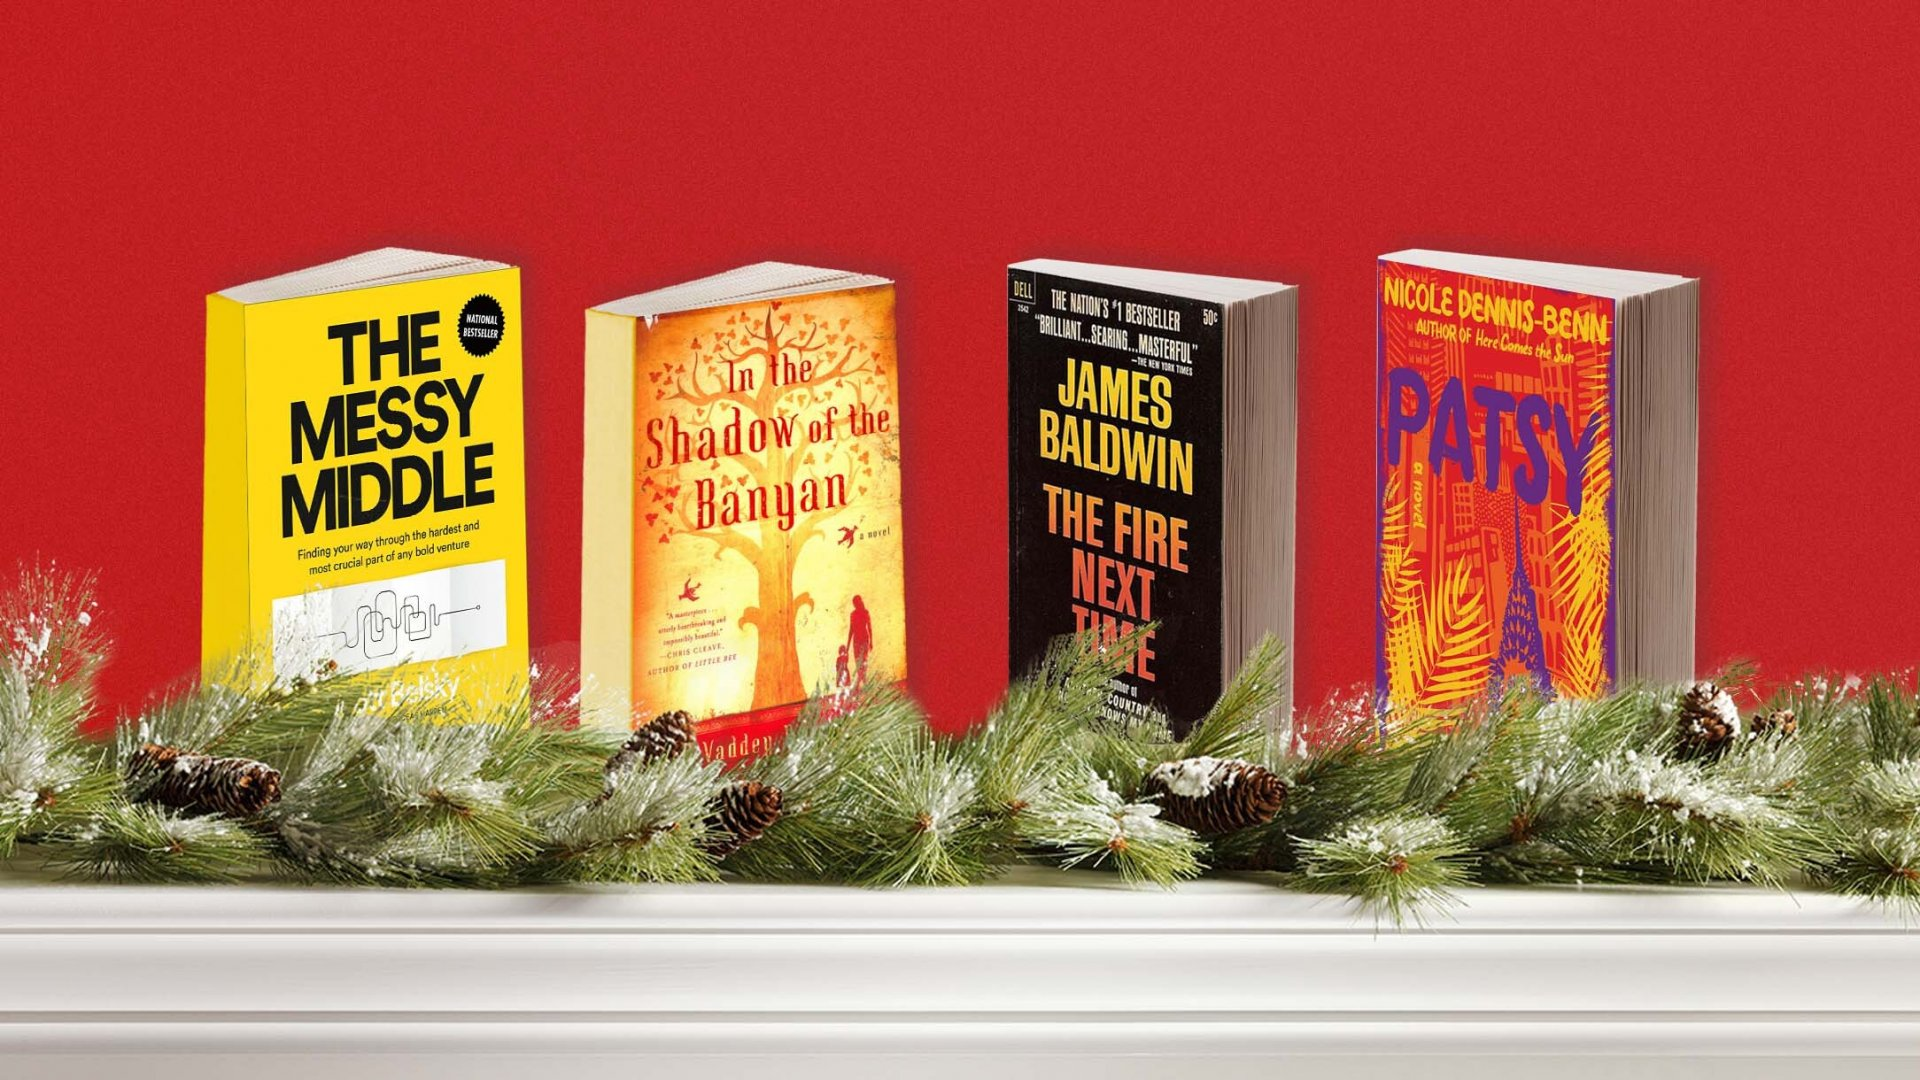 23 Books for Inspiring Holiday Reading, Recommended by TED Speakers